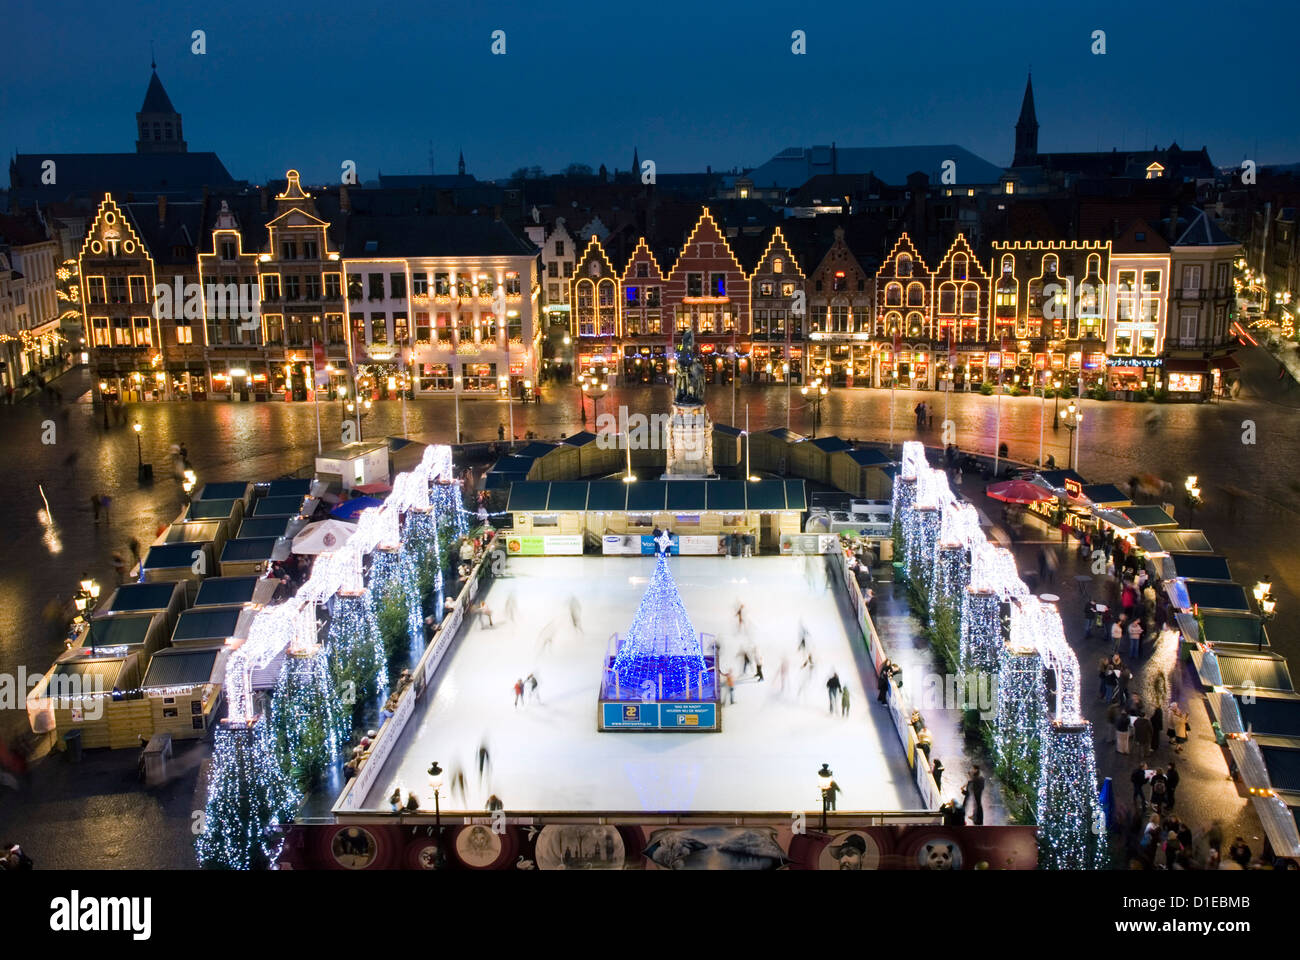 Bruges Christmas Market.Ice Rink And Christmas Market In The Market Square Bruges